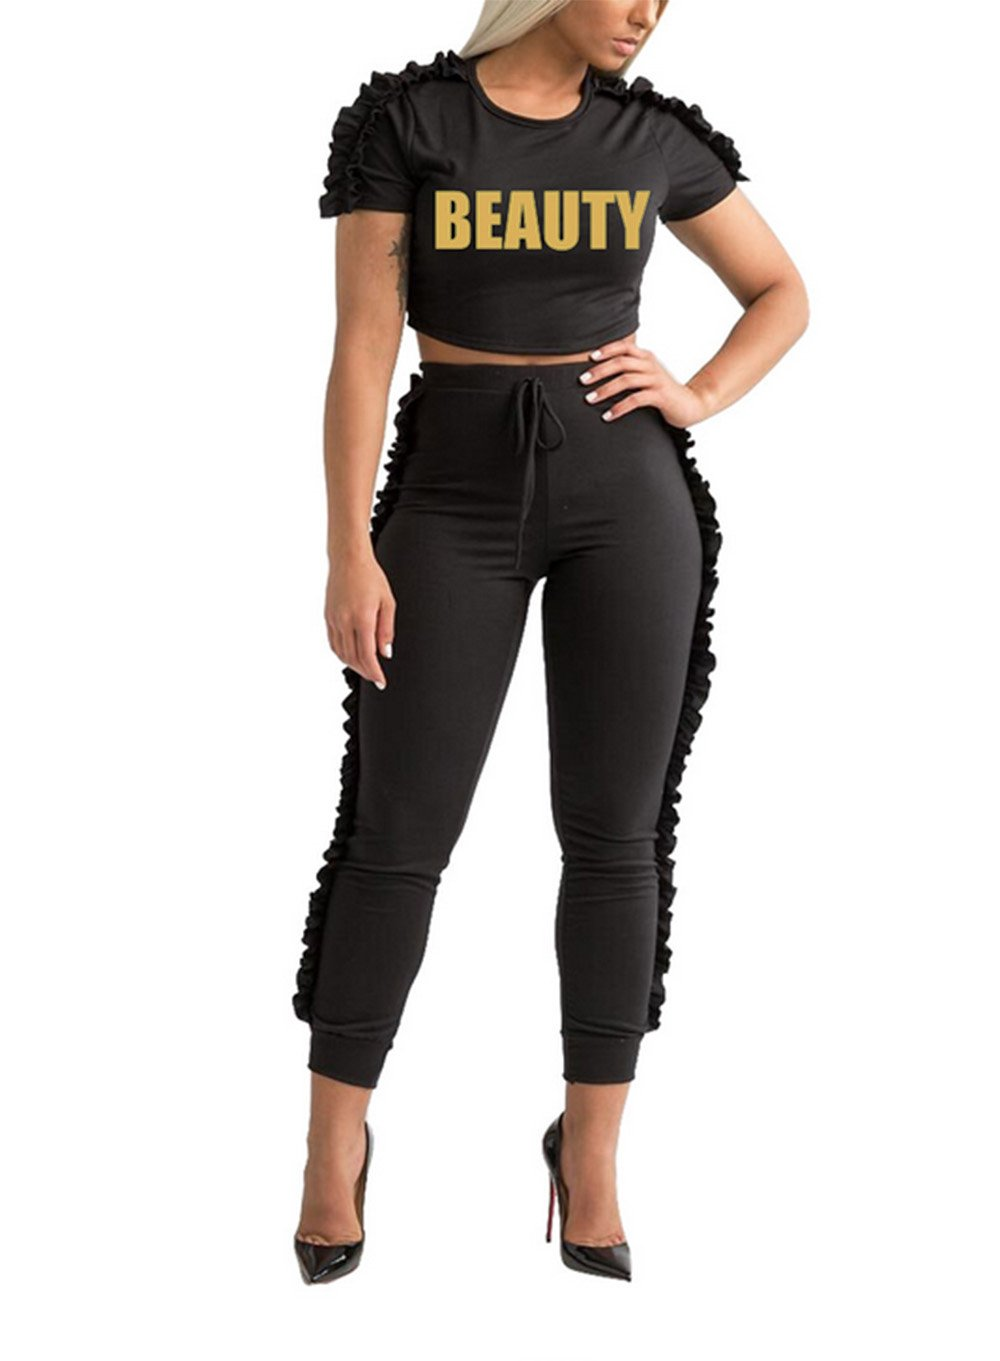 Lovelyduo Women's 2 Pieces Outfits Crop Top and Long Flounced Pants Sweatsuits Set Tracksuits Black M